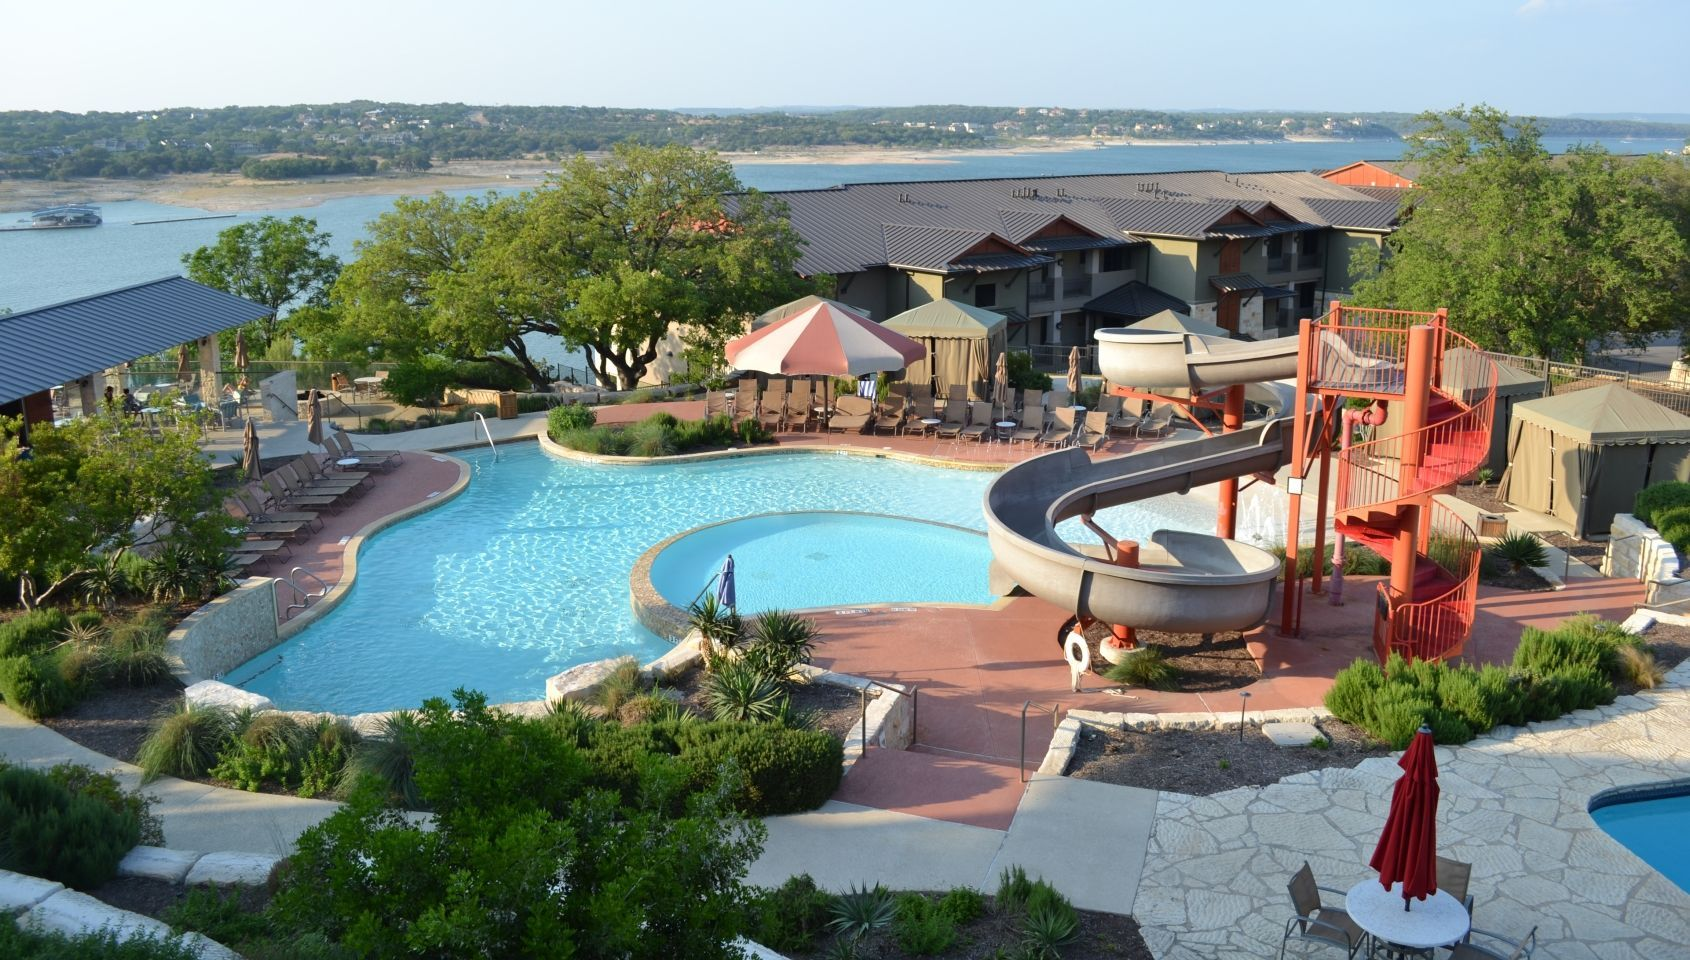 lakeway resort austin texas travel pinterest austin